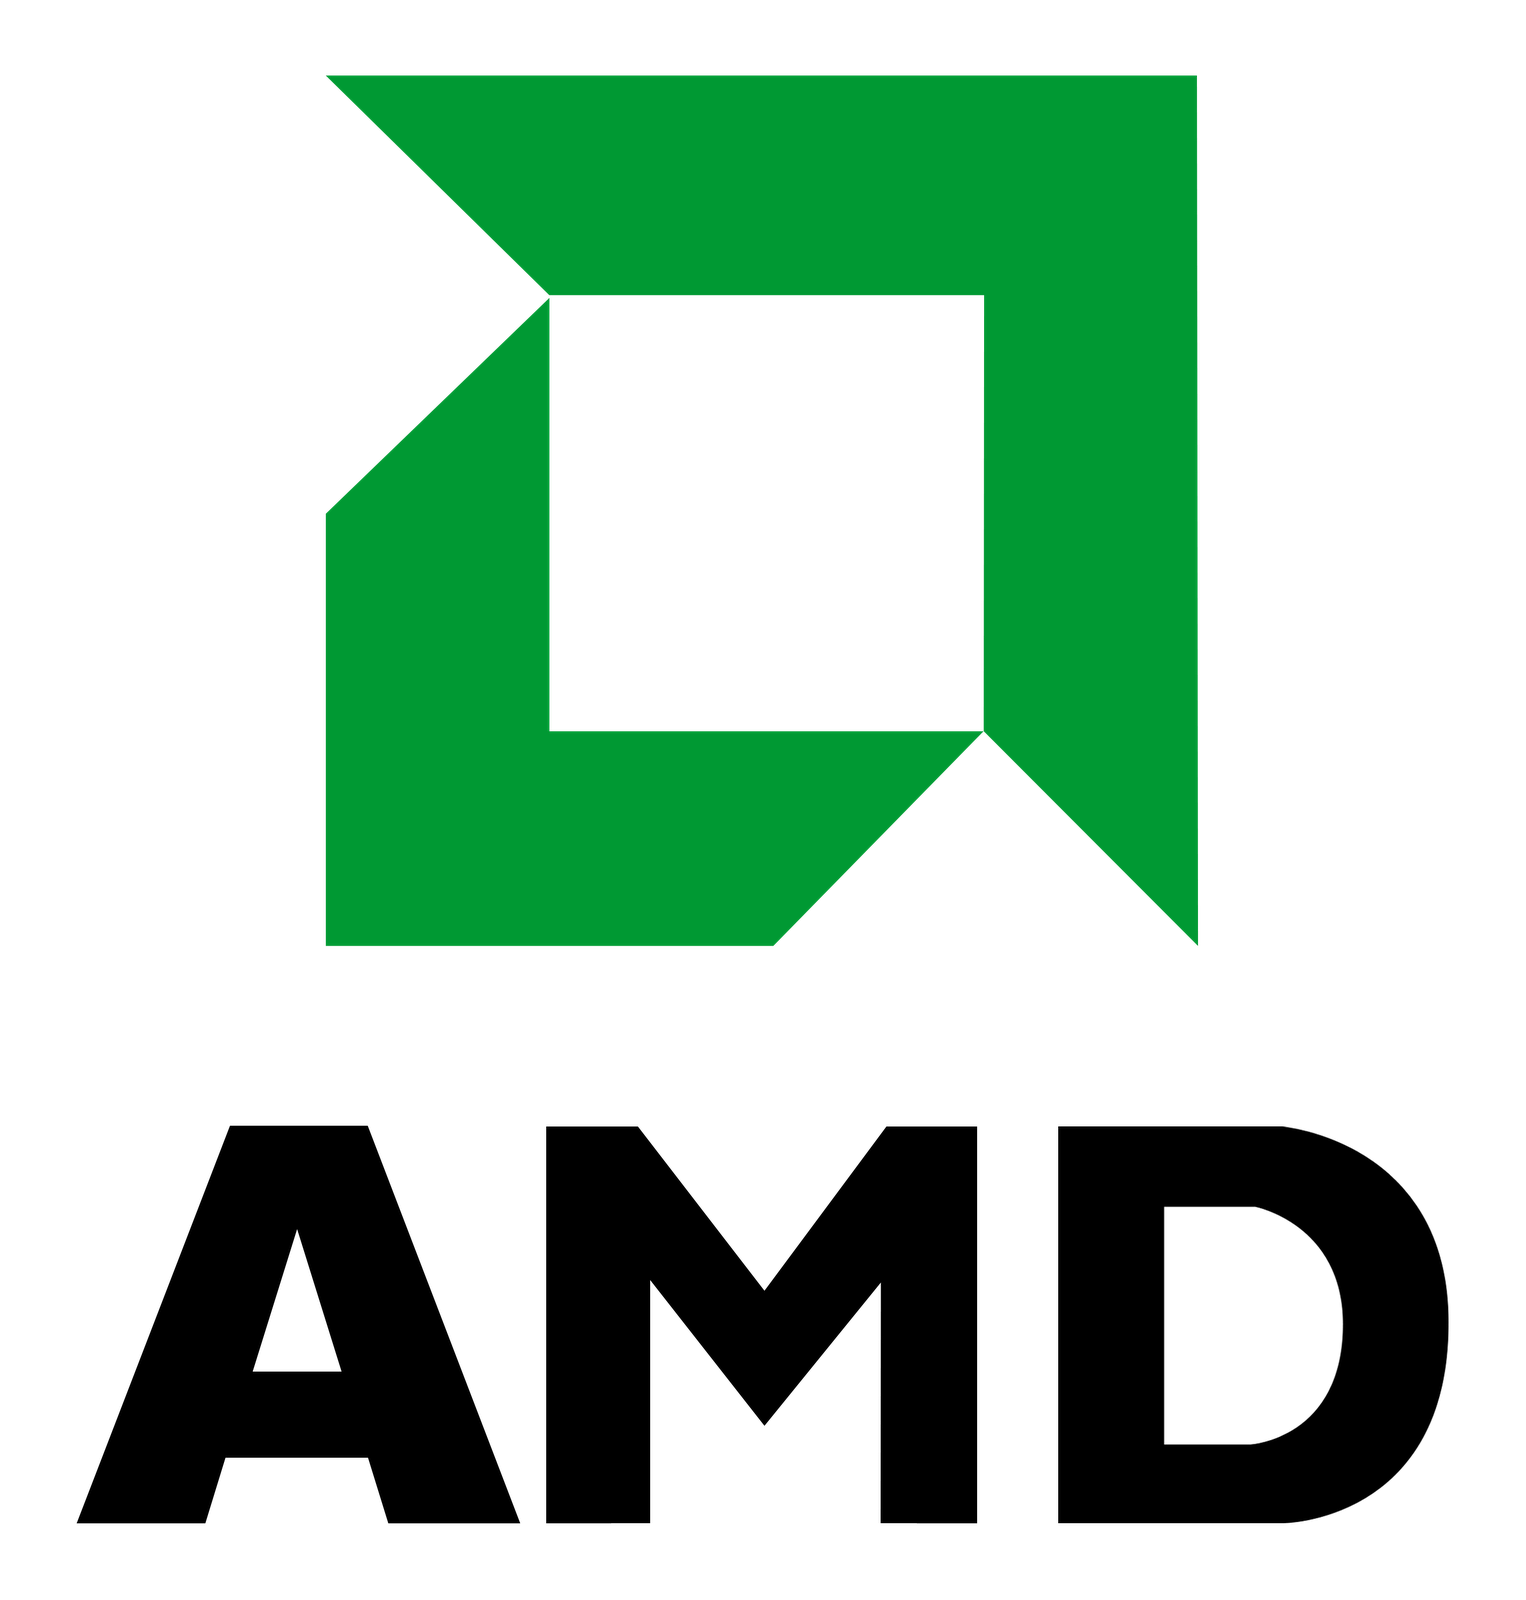 Amd-Square-logo